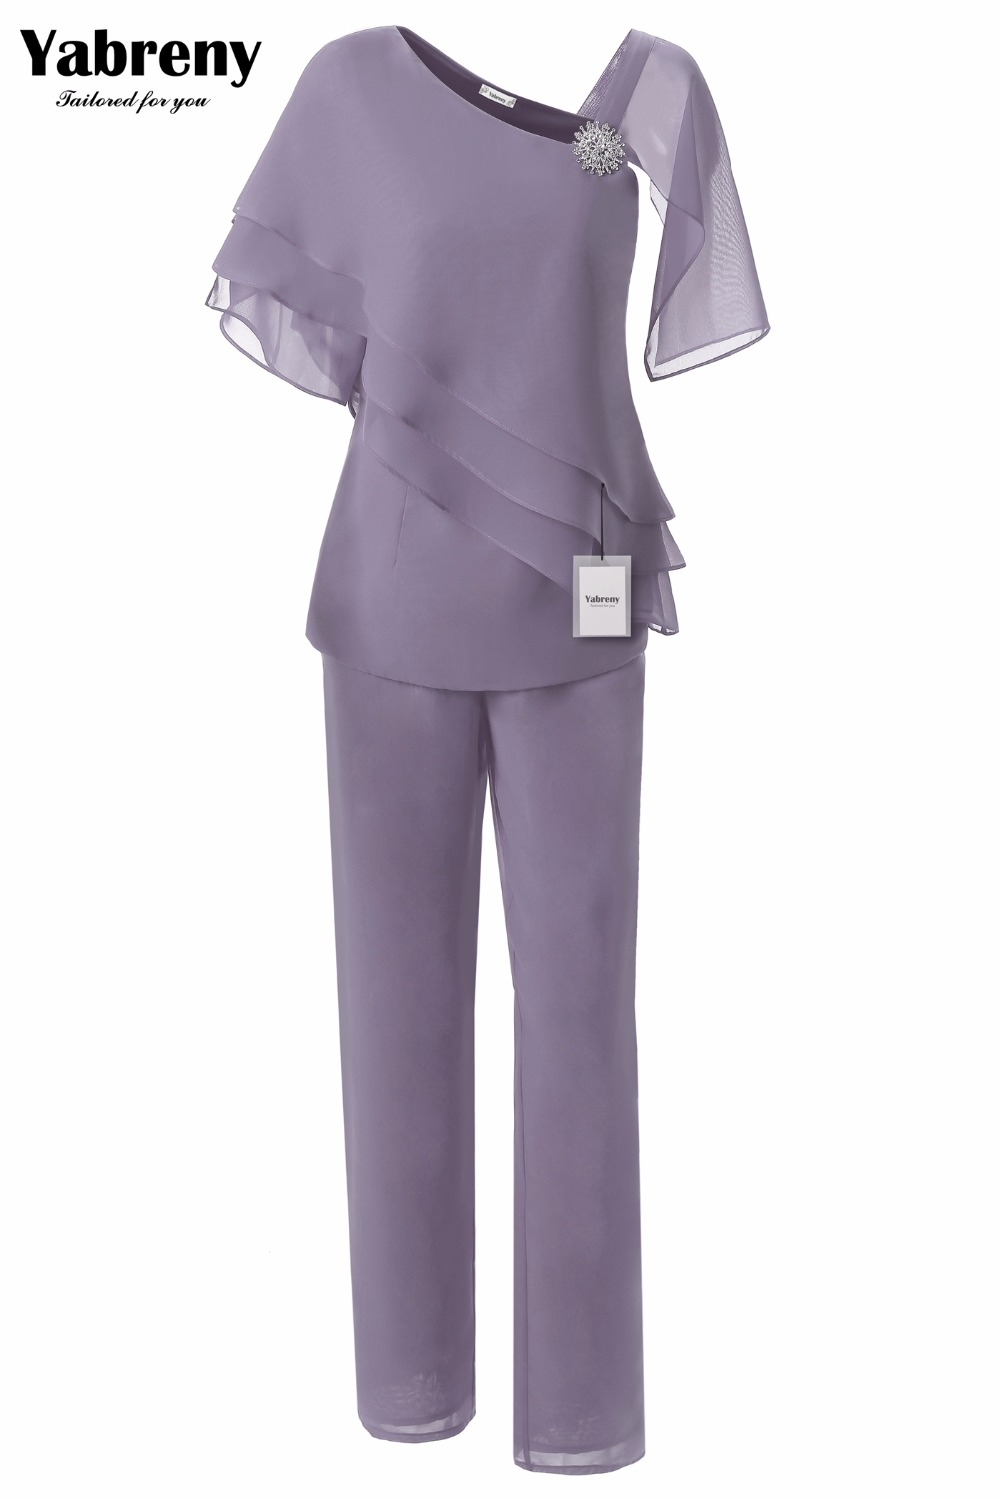 Fashion Chiffon Mother Of The Bride Pants Suit 2PC Outfit Gray